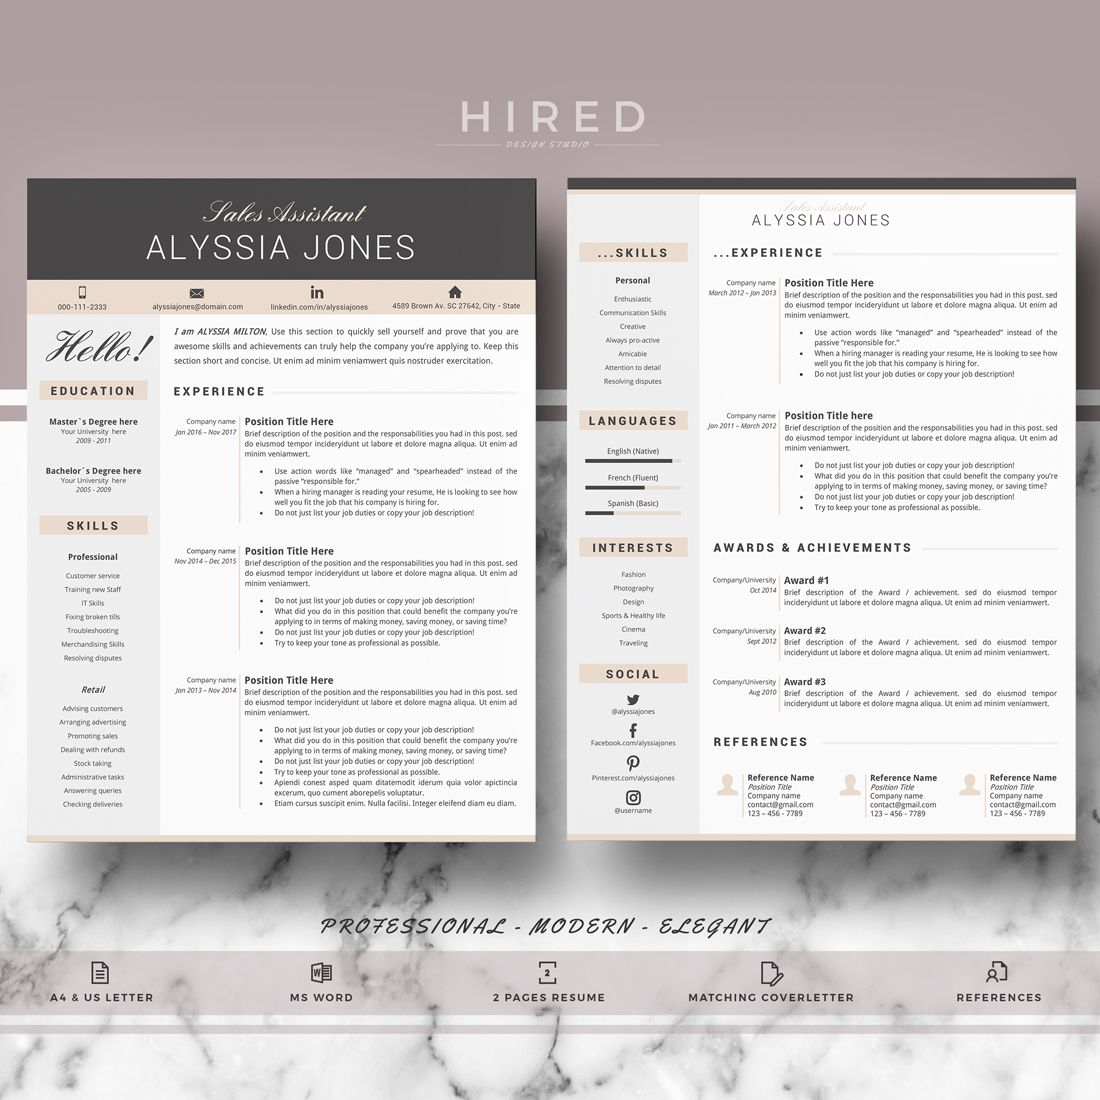 Resume Nabeel Wiring Library Air York Diagrams Conditioners Sn Nggm094663 Cv Template Modern Creative Professional